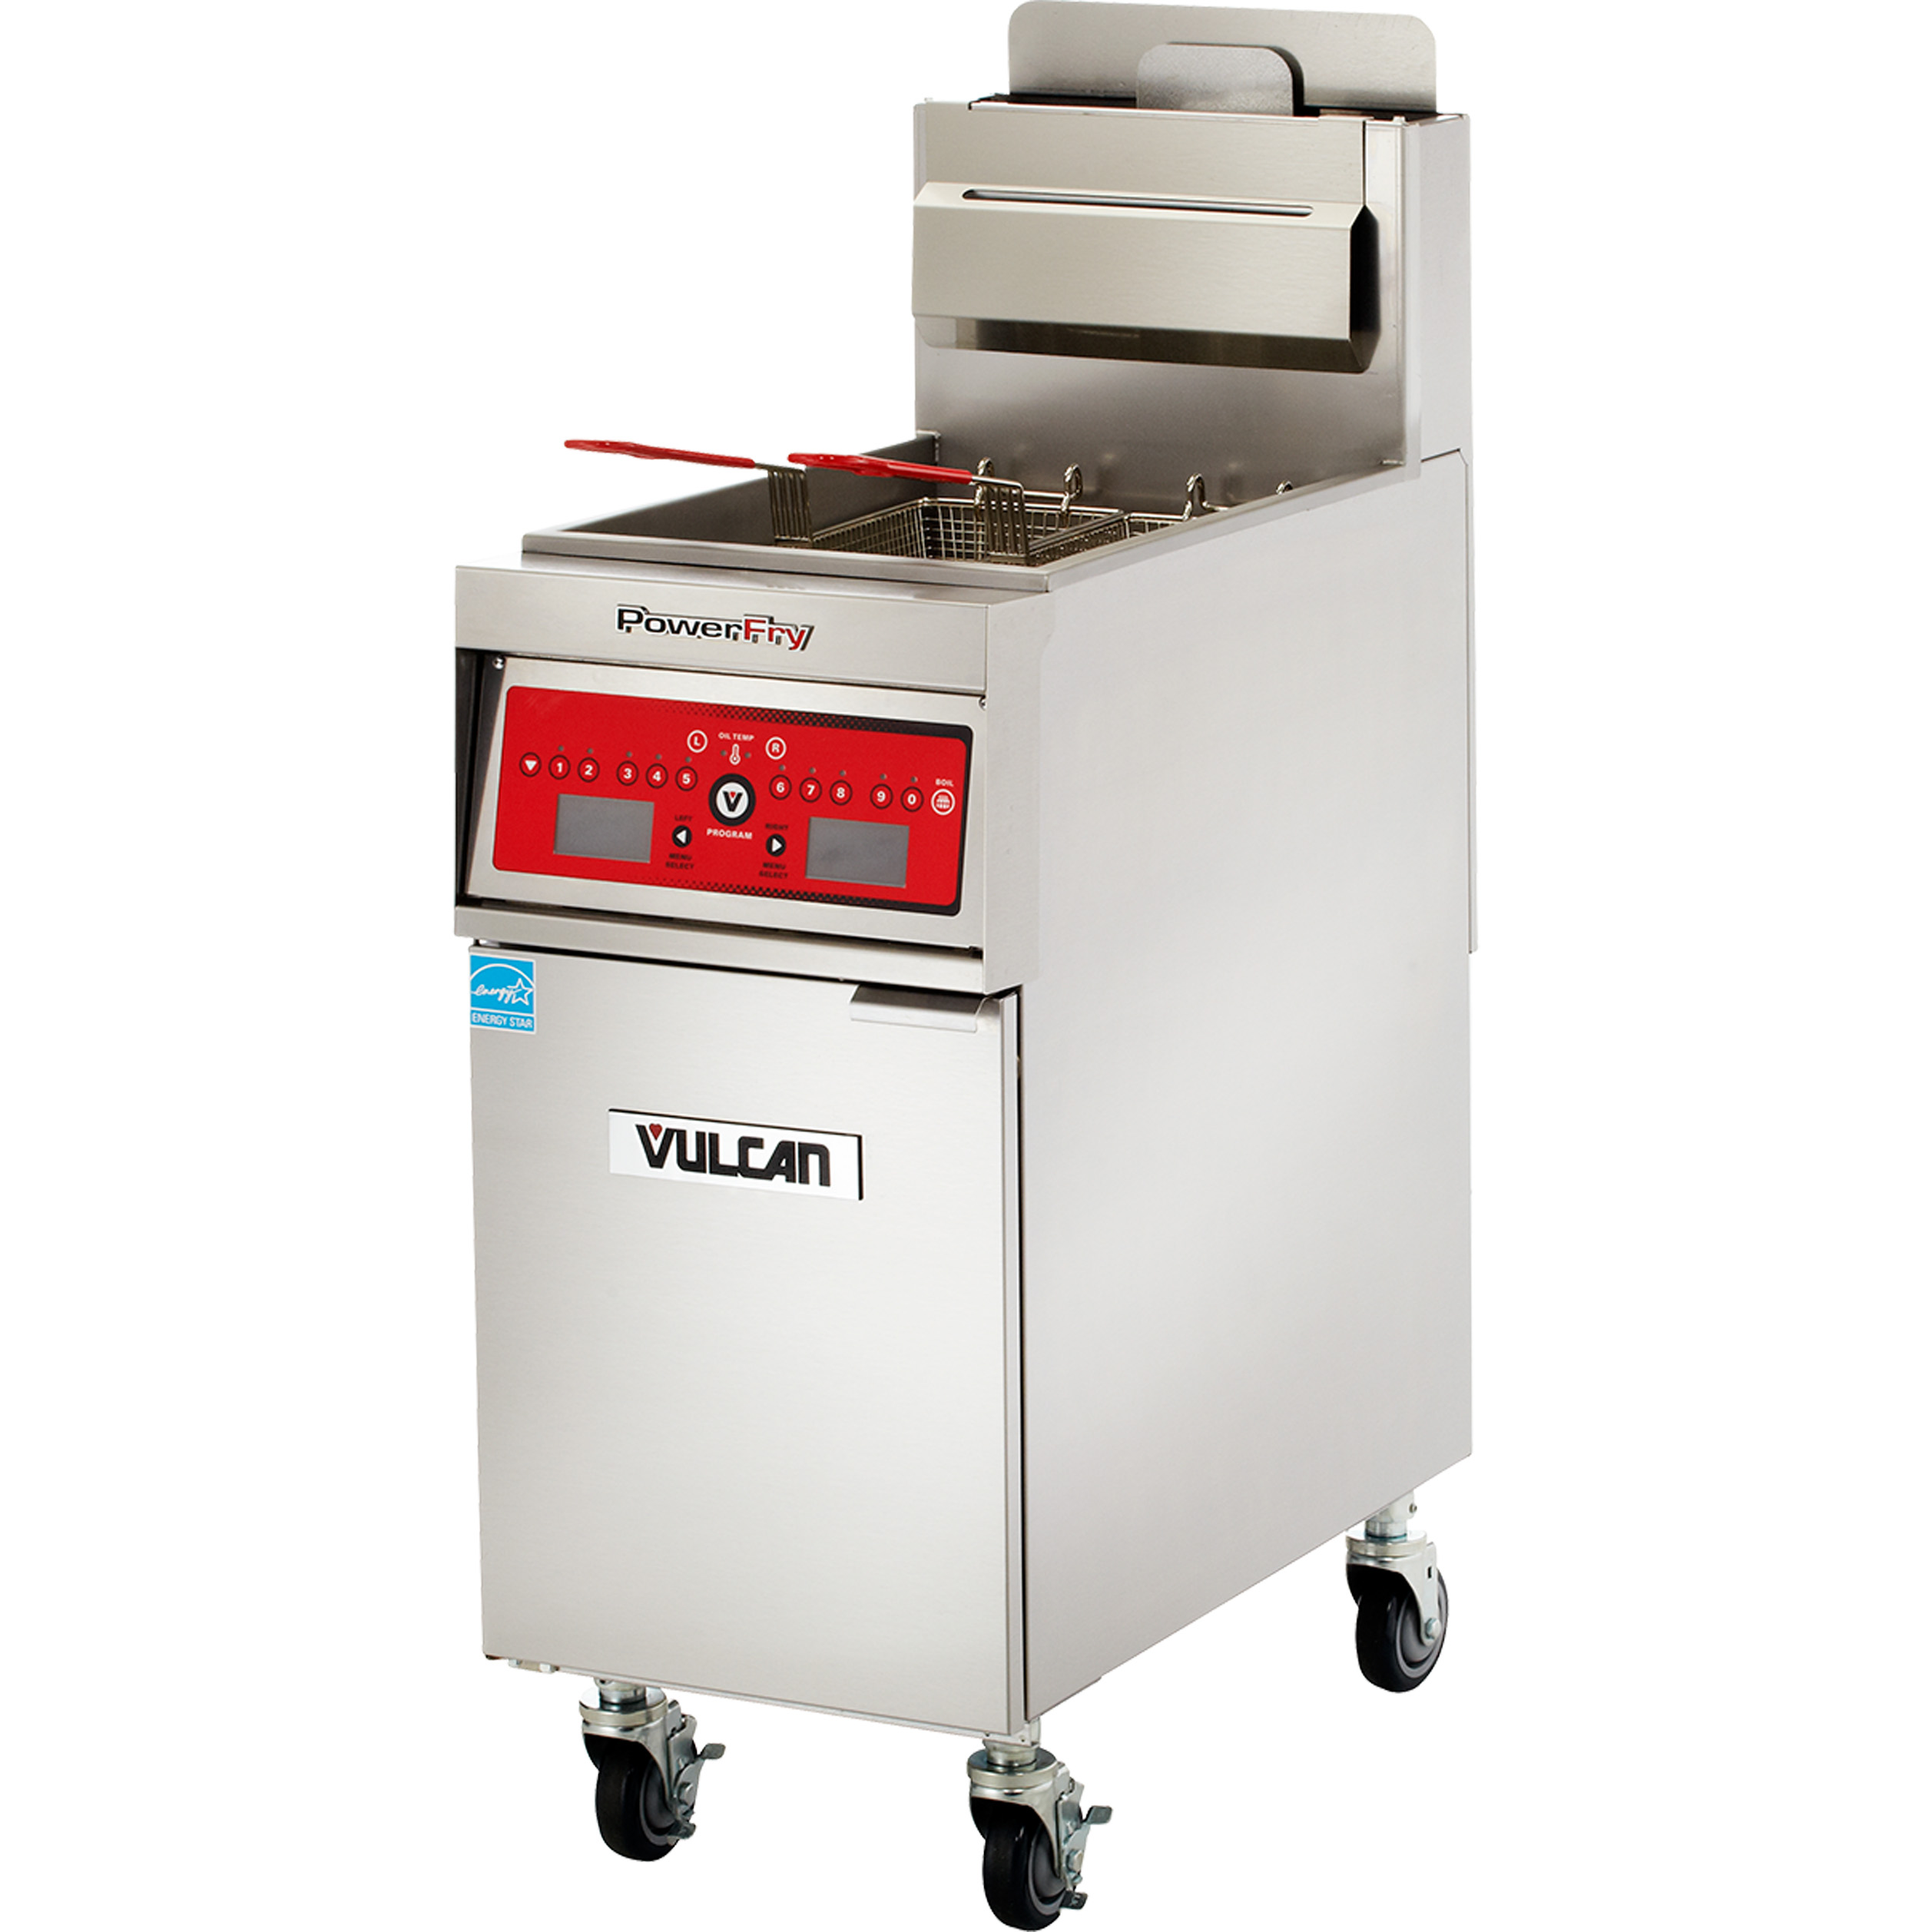 Vulcan 1VK85DF fryer, gas, floor model, full pot